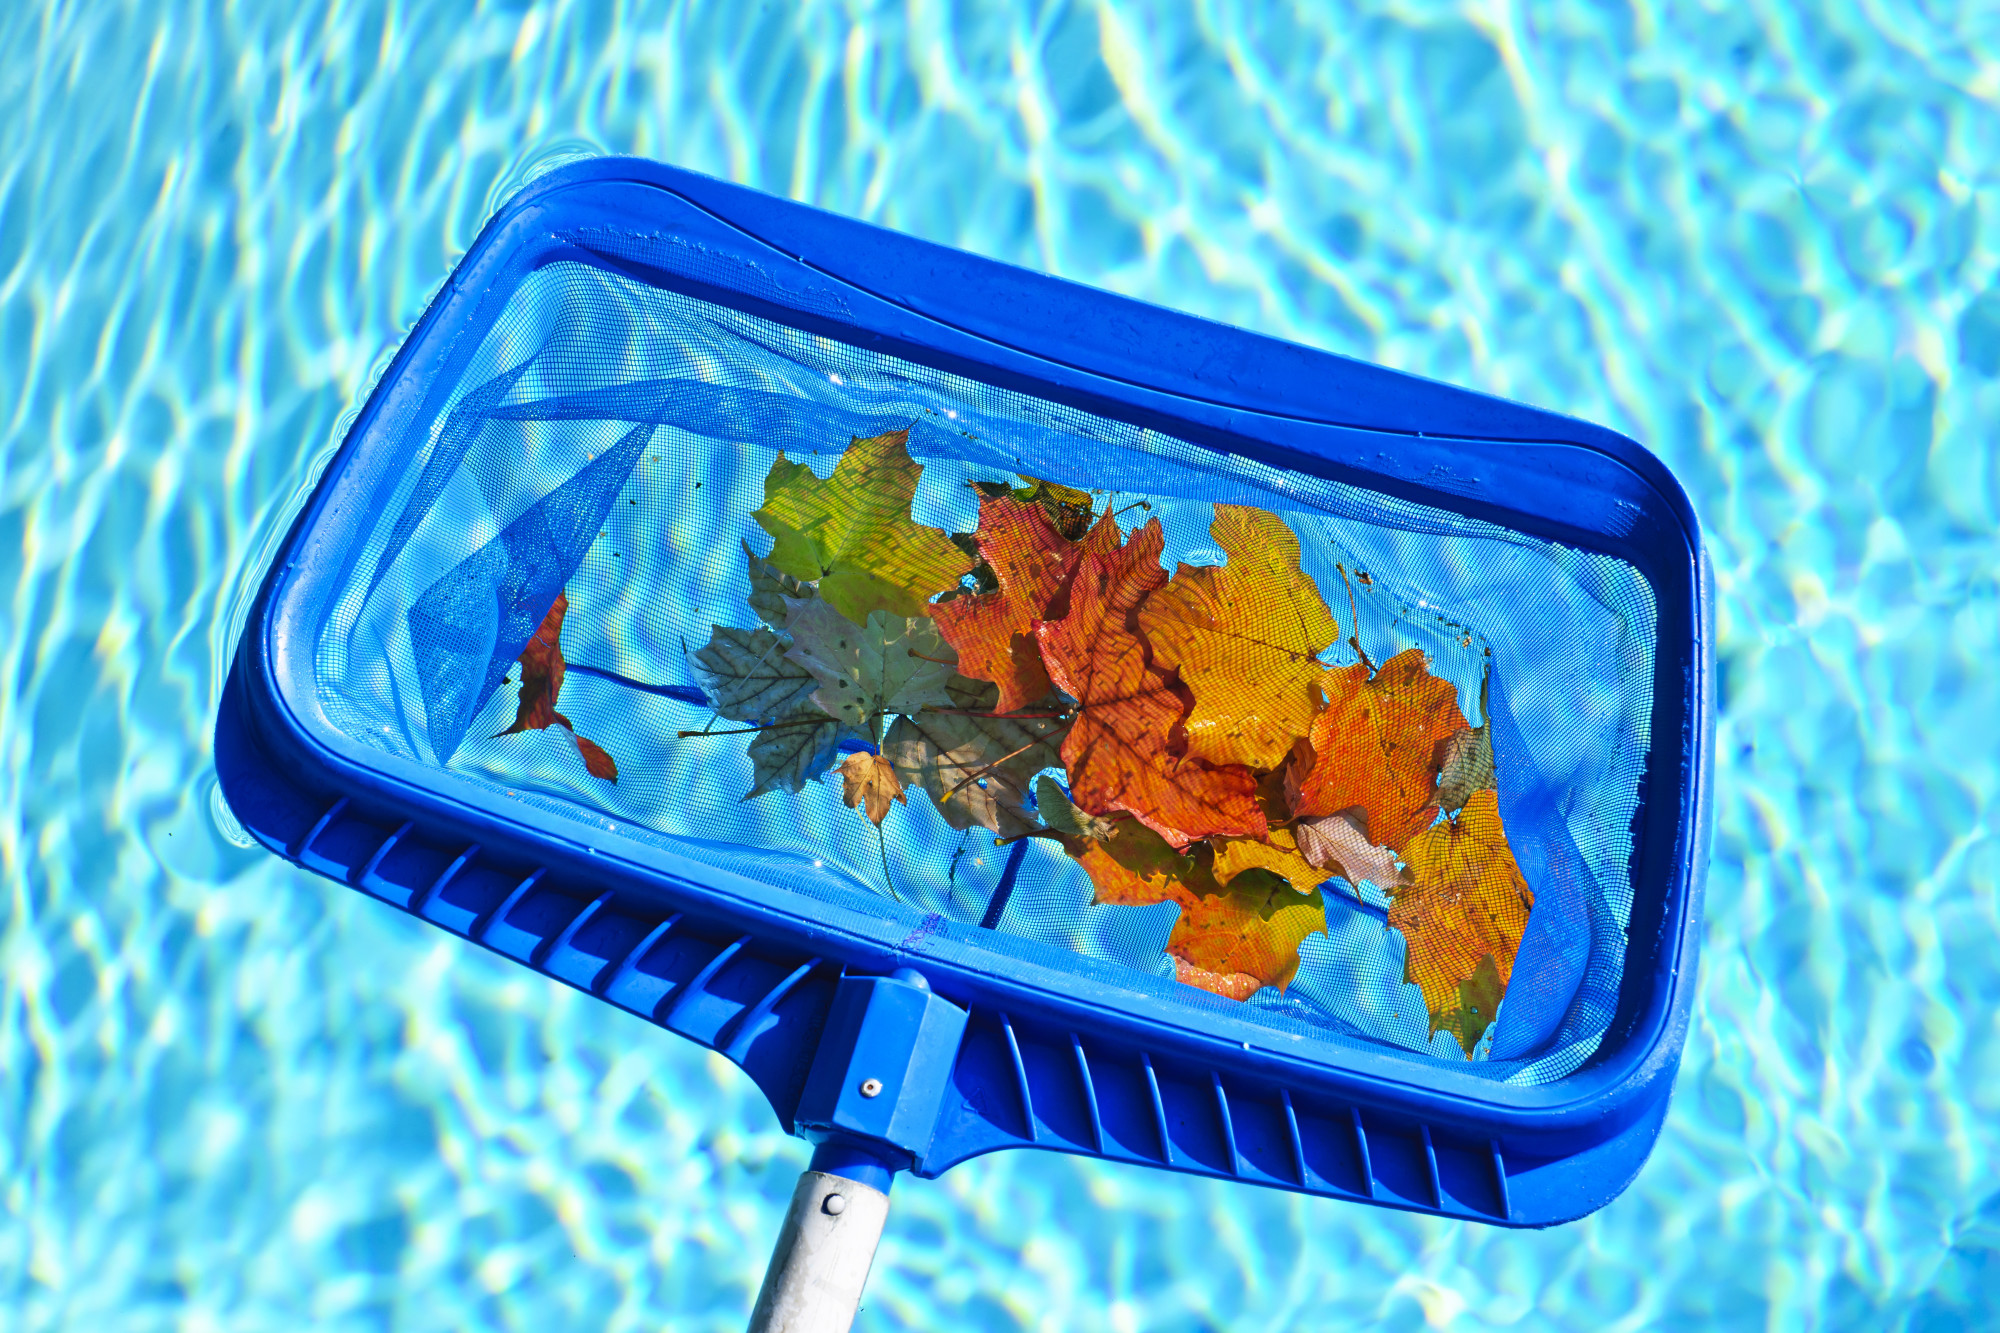 pool cleaning mistakes